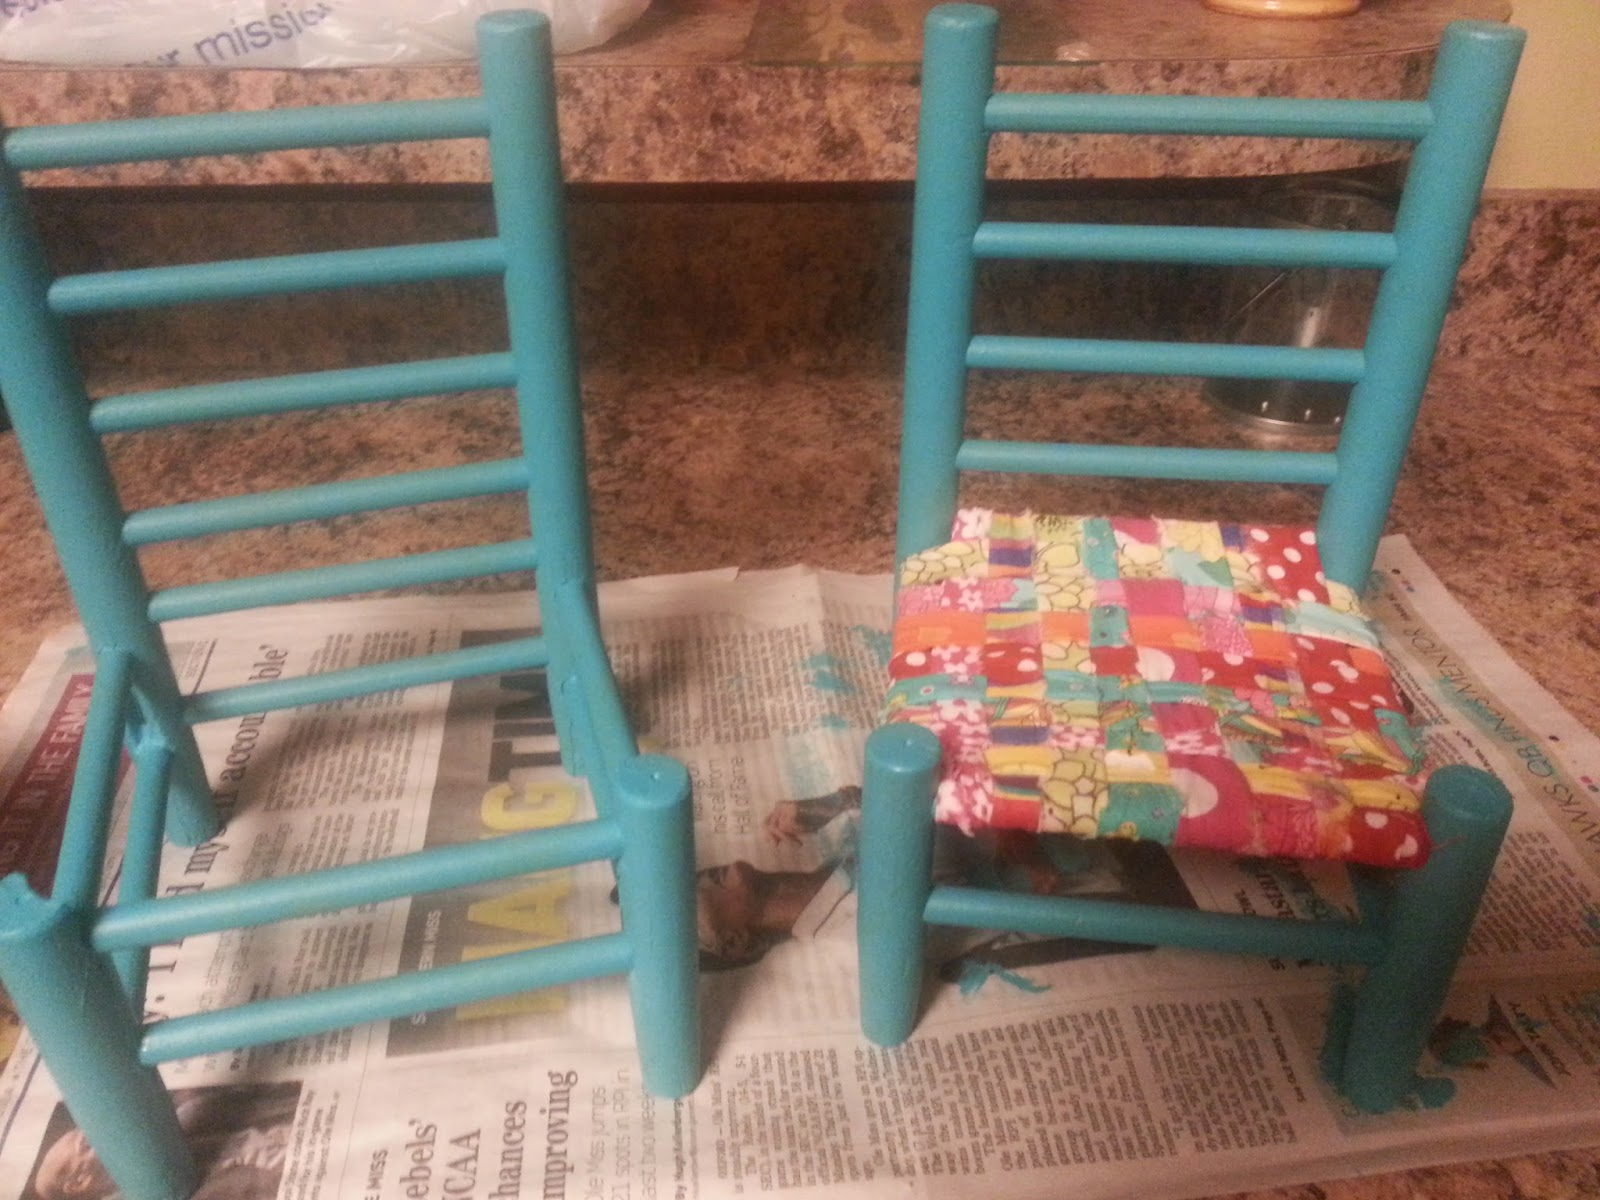 A Mcinnis Artworks How To Weave A Fabric Chair Seat